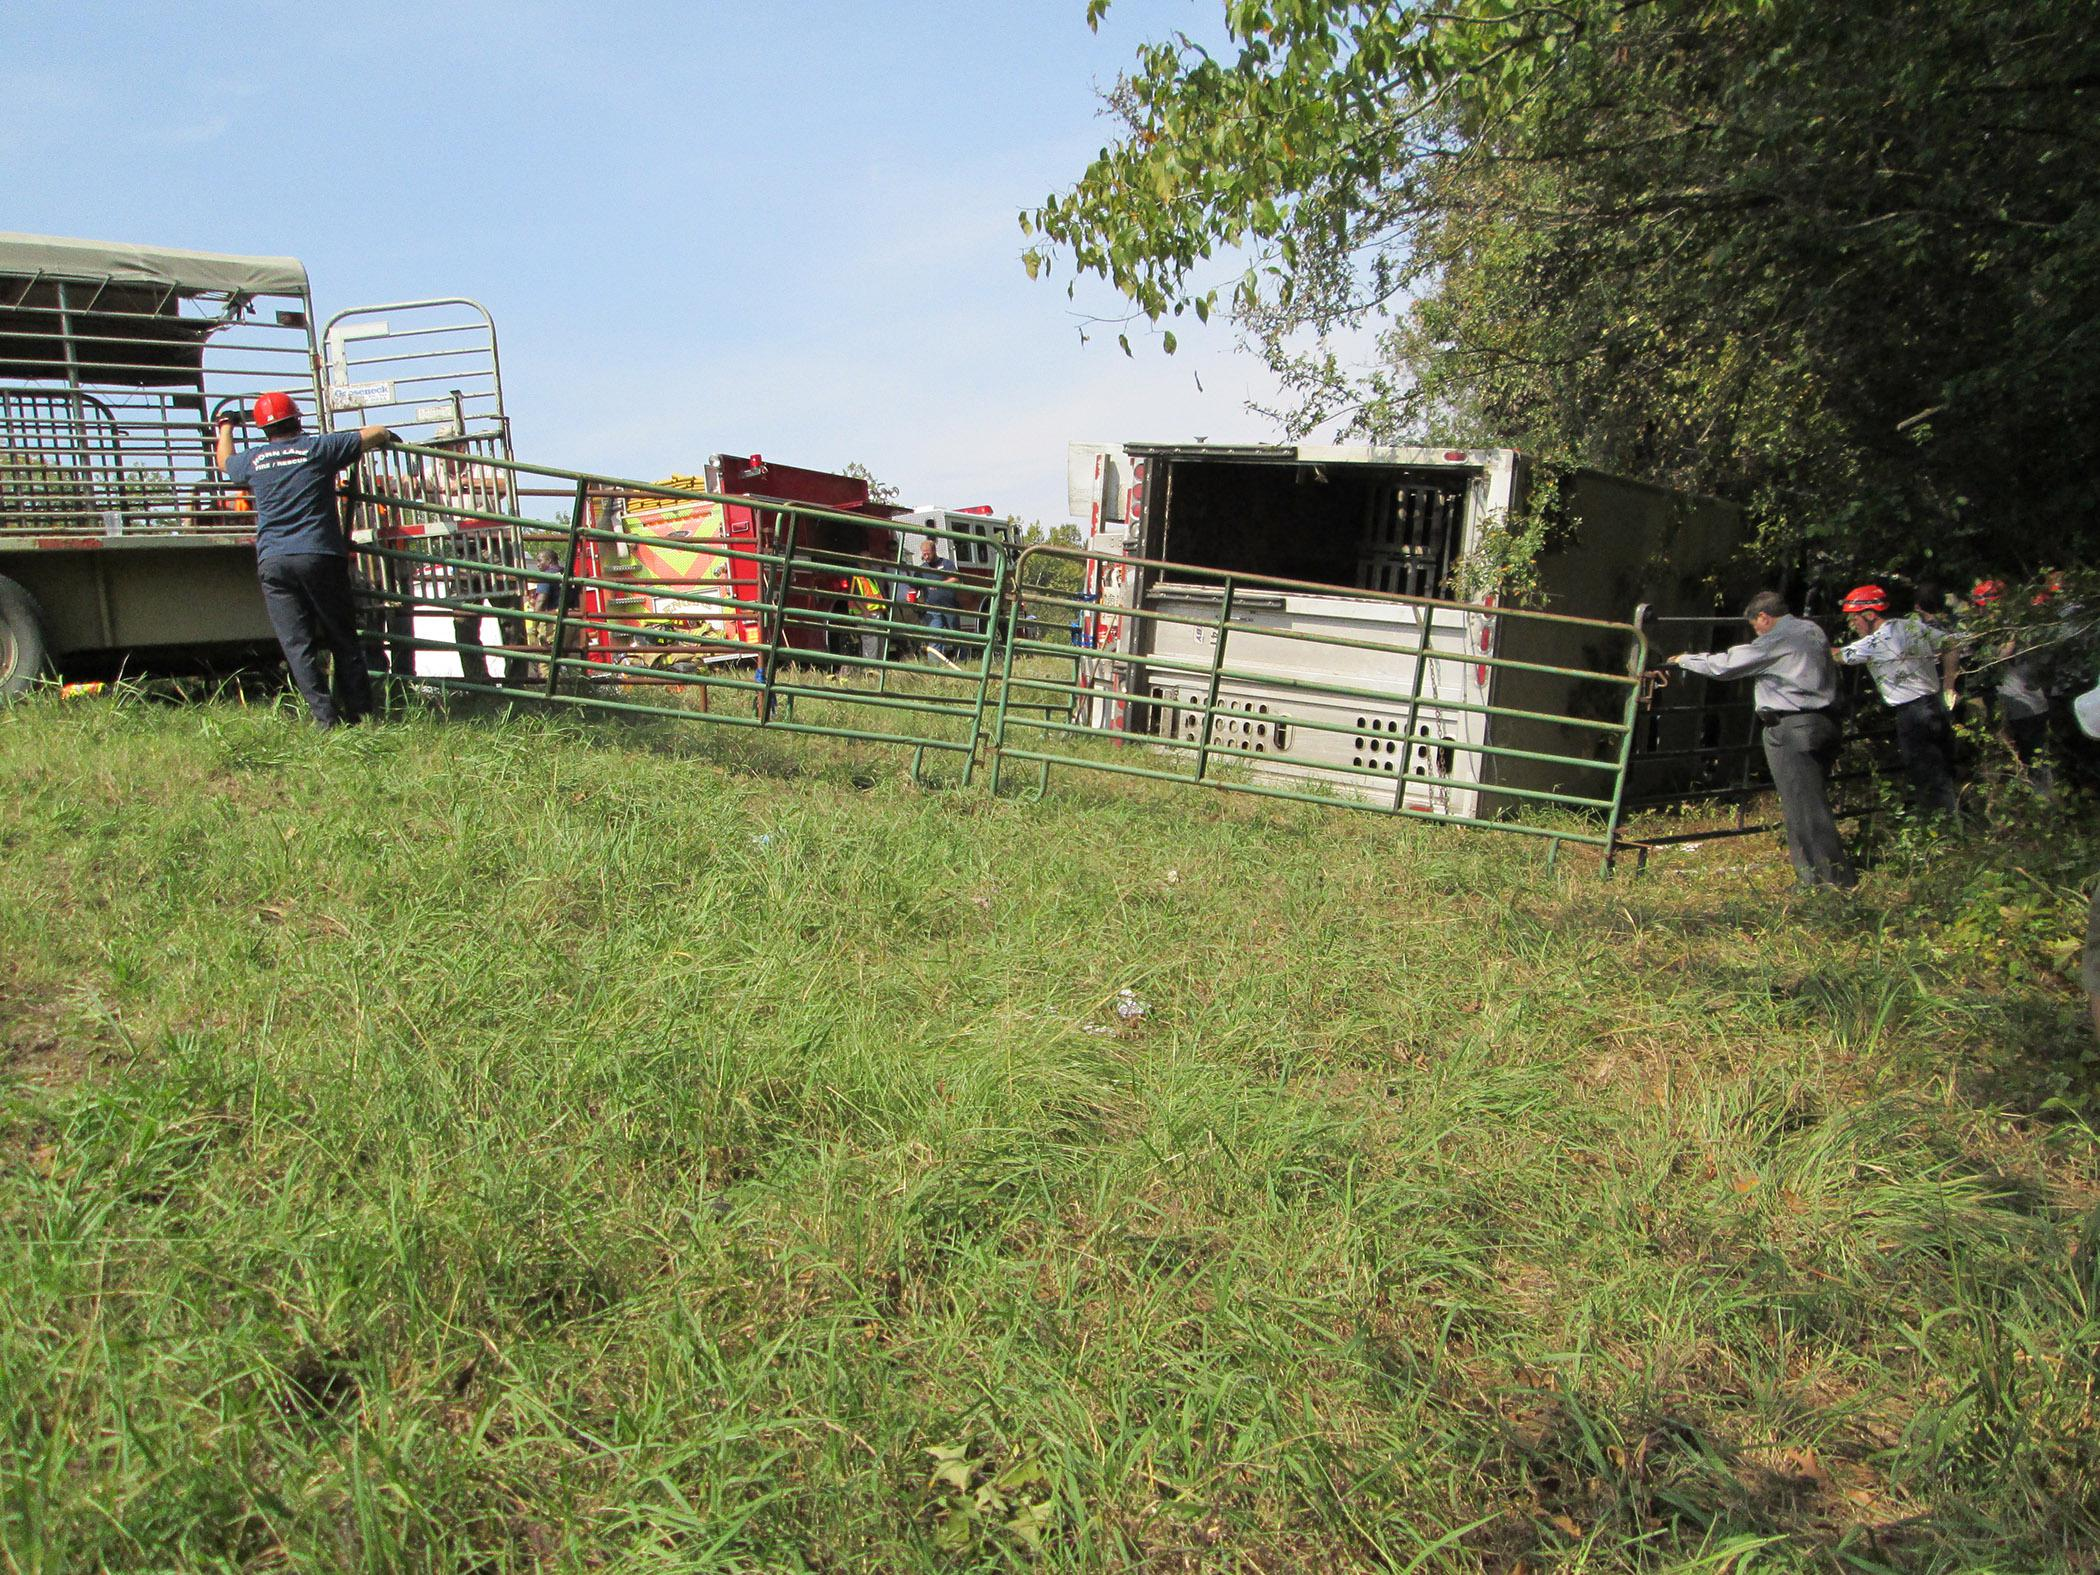 First responders brought in heavy equipment and portable fencing to help remove and contain about 100 cattle from an overturned 18-wheeler in DeSoto County on Highway 78 on Sept. 28, 2012. (Photo by Mississippi Board of Animal Health/Jesse Carter)